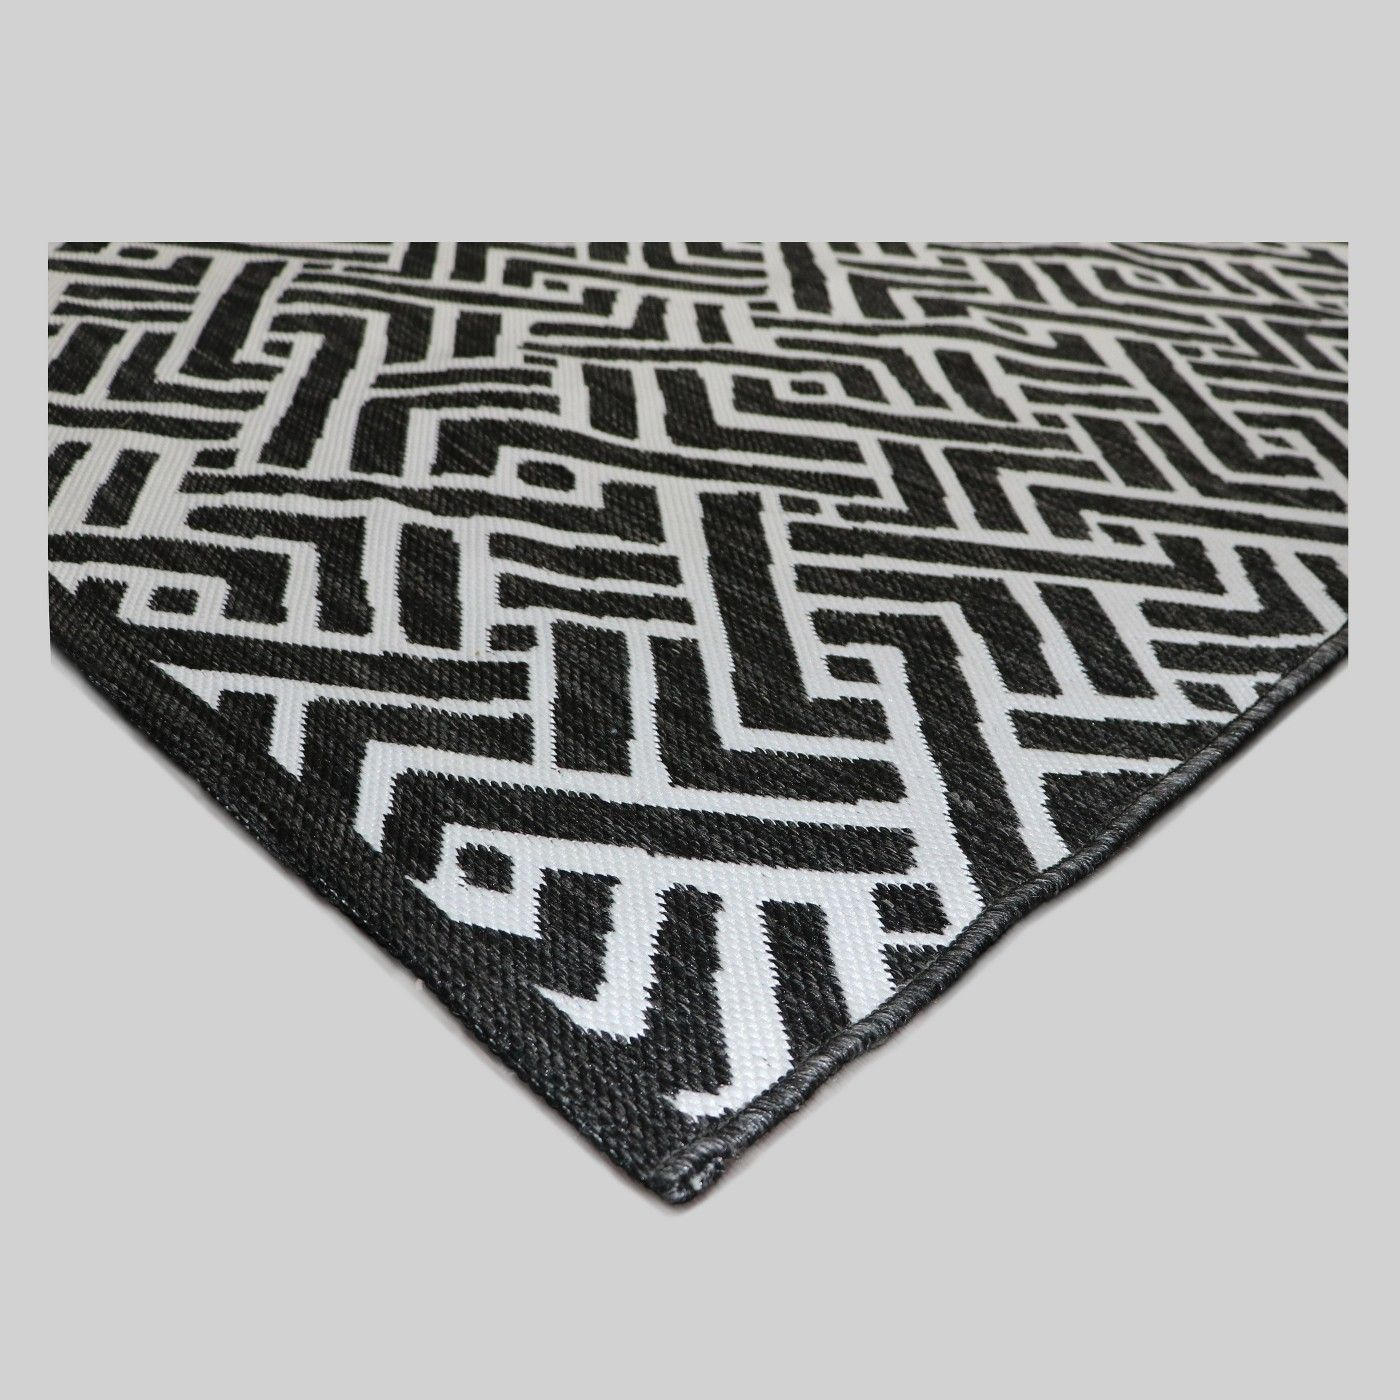 Black Global Weave Outdoor Rug Threshold™ image 2 of 2